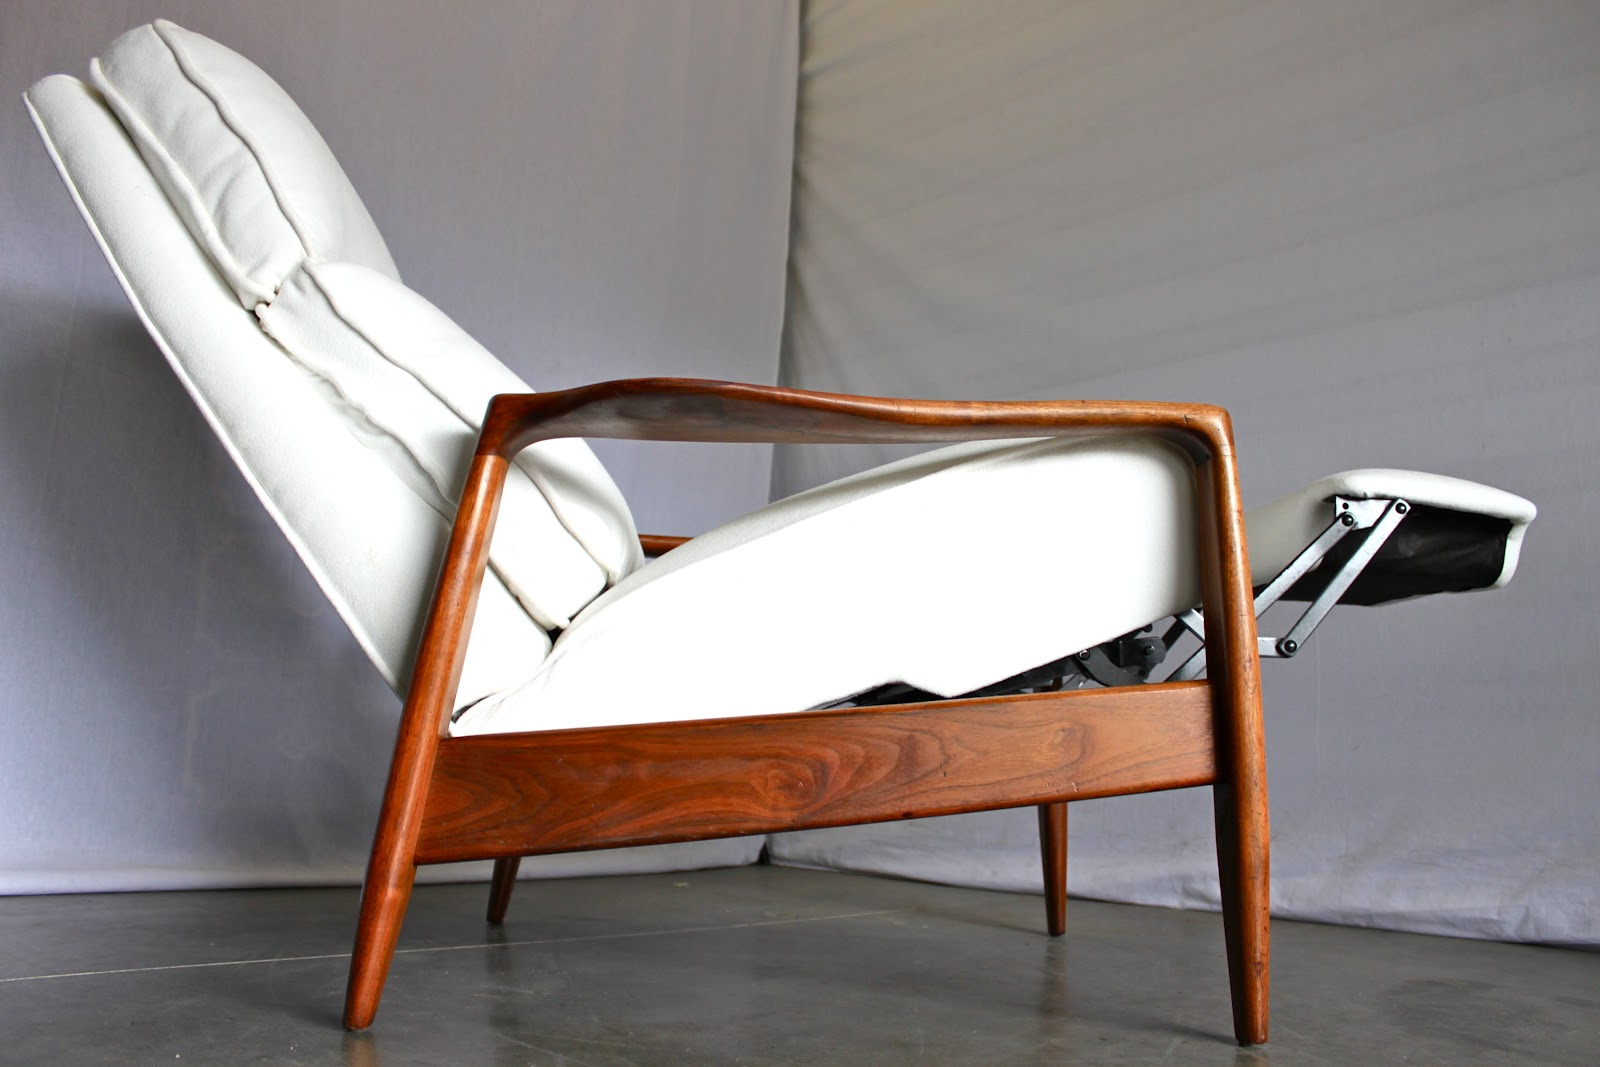 Rare Milo Baughman recliner refinished & MODERNHAUS: May 2012 islam-shia.org